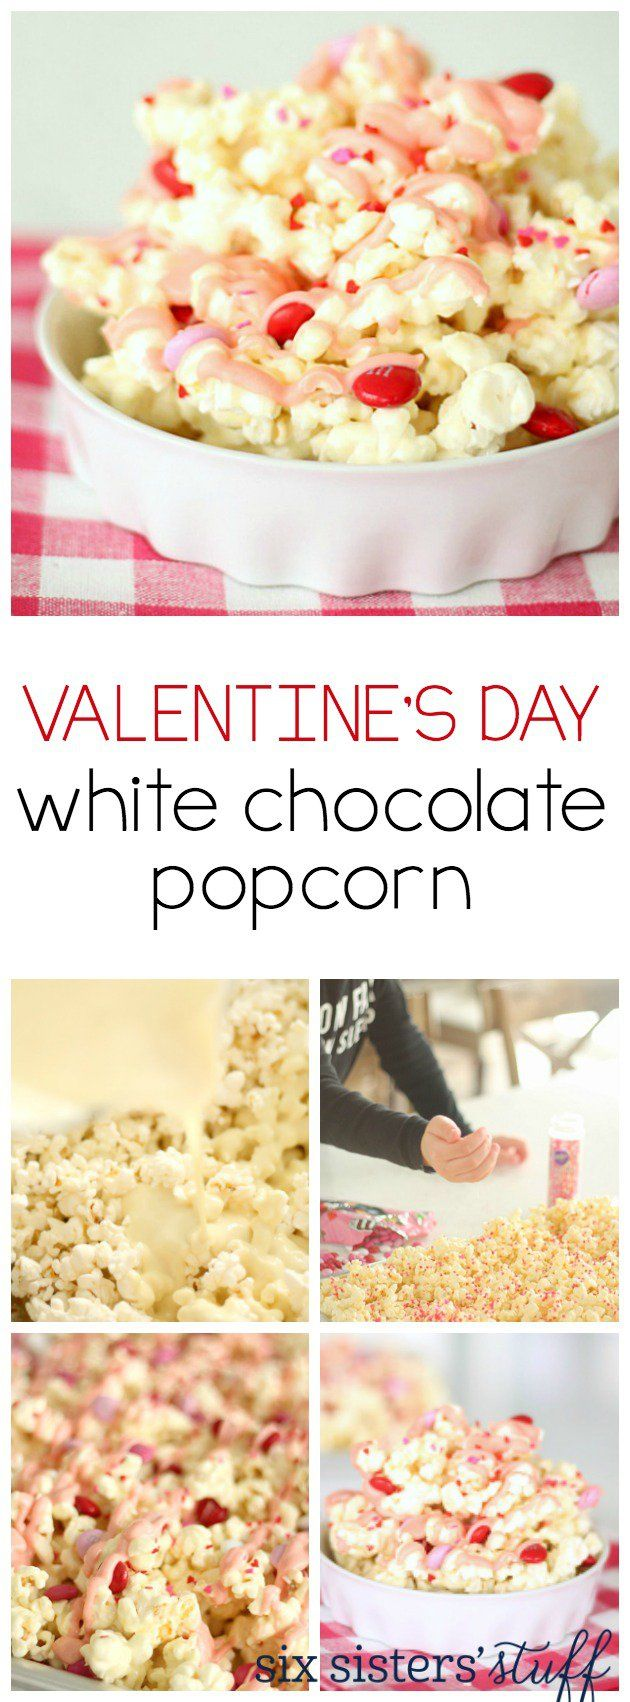 Valentine's Day White Chocolate Popcorn from SixSistersStuff.com | This easy recipe is delicious and perfect to make with little helpers for a Valentines treat!